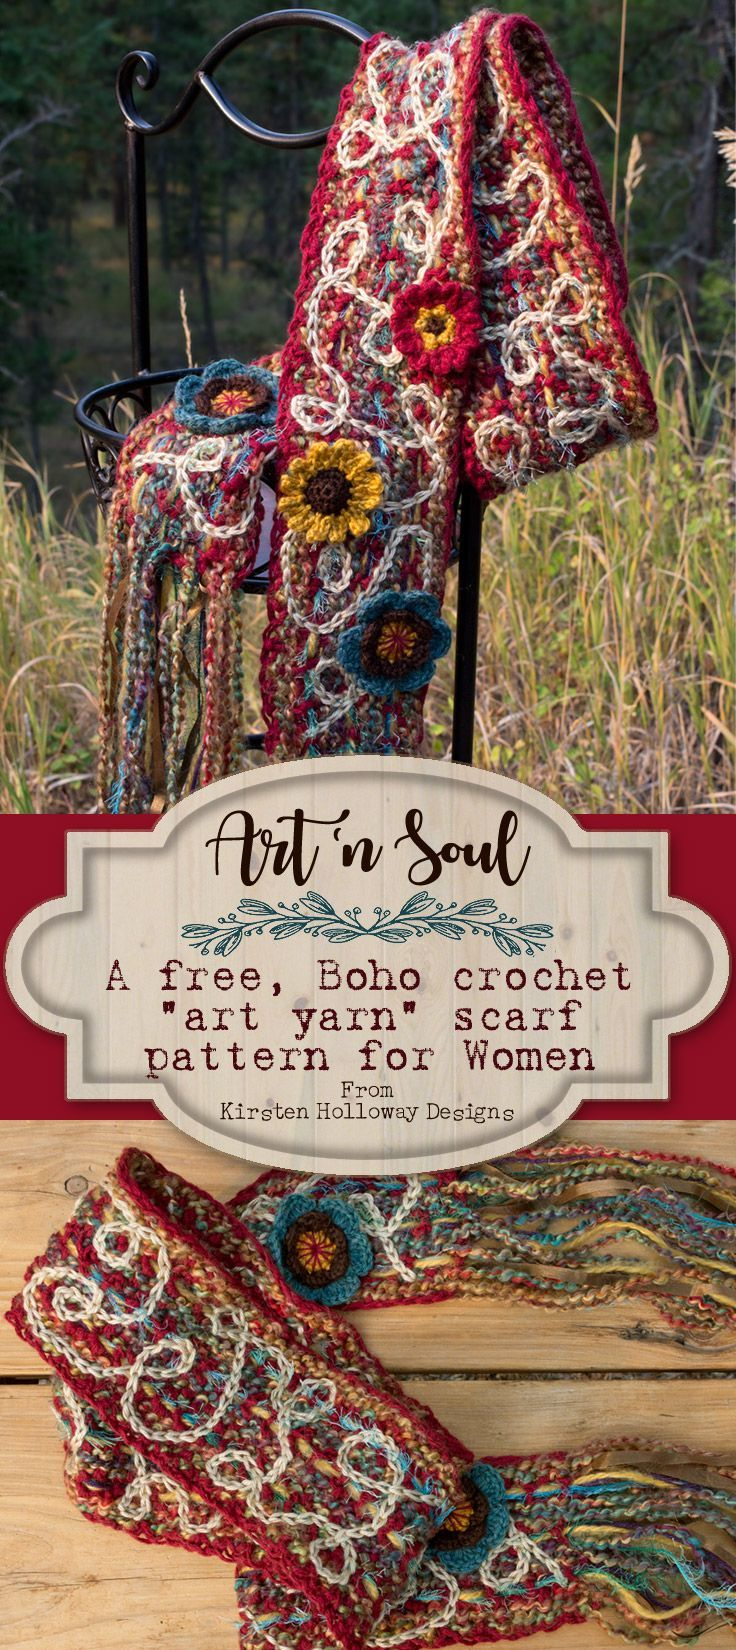 "Crochet your own unique statement piece by following this easy, free DIY pattern tutorial to create a beautiful boho or ""art yarn"" inspired scrappy scarf on a budget. It's super cute, and simple enough for a beginner to master!"